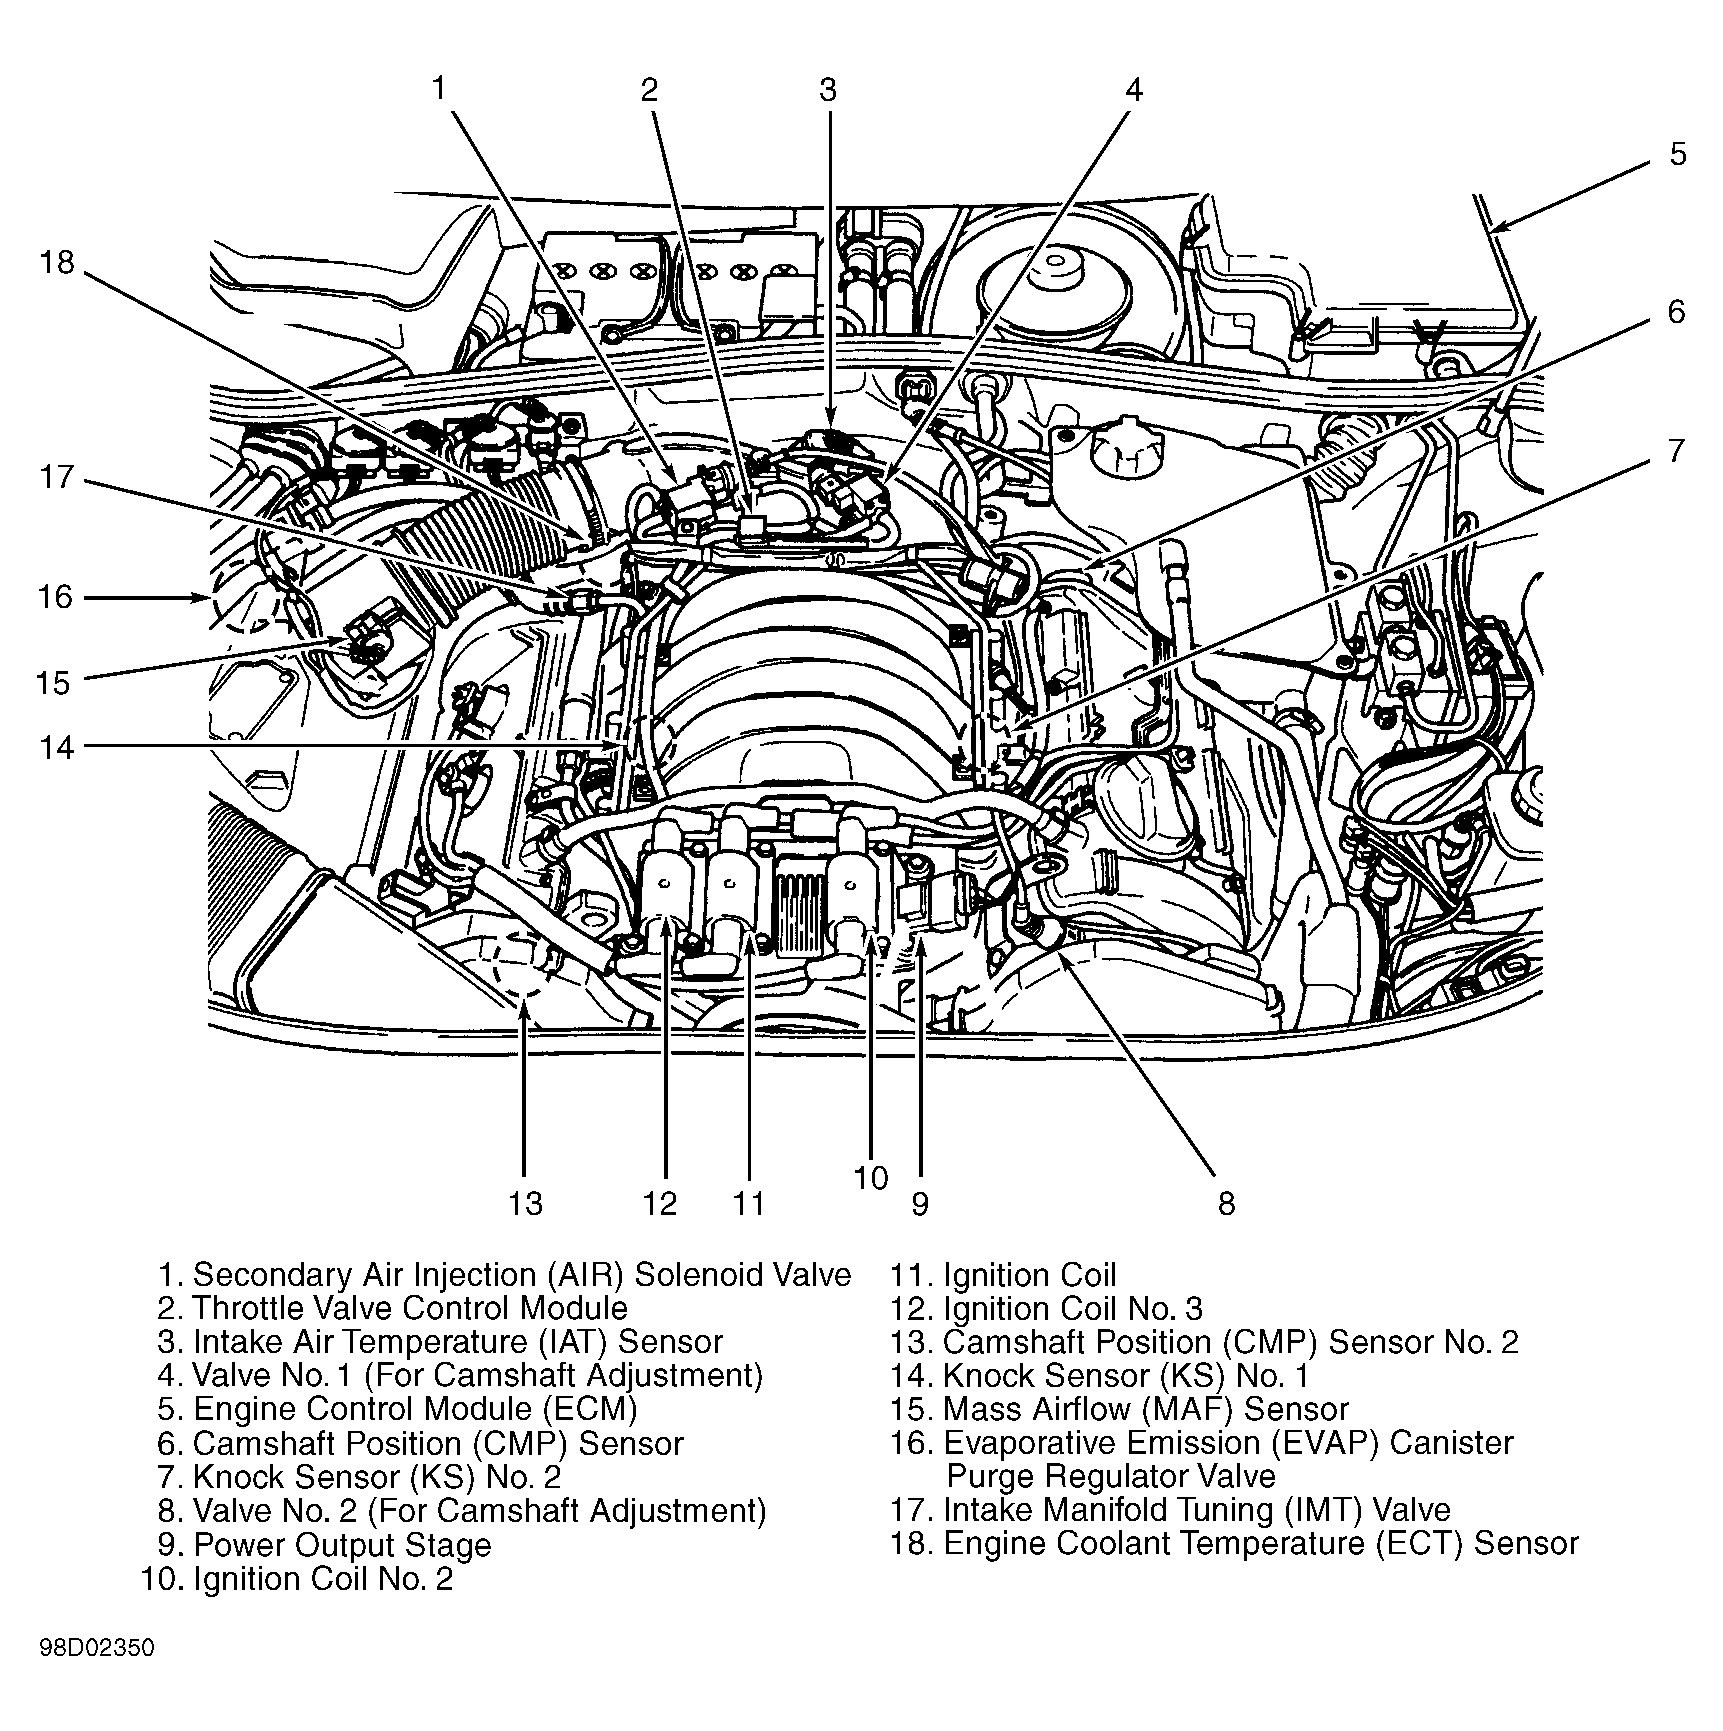 Dohc V6 Dohc Engine Diagram - Do you want to download wiring ...  Engine Diagram on